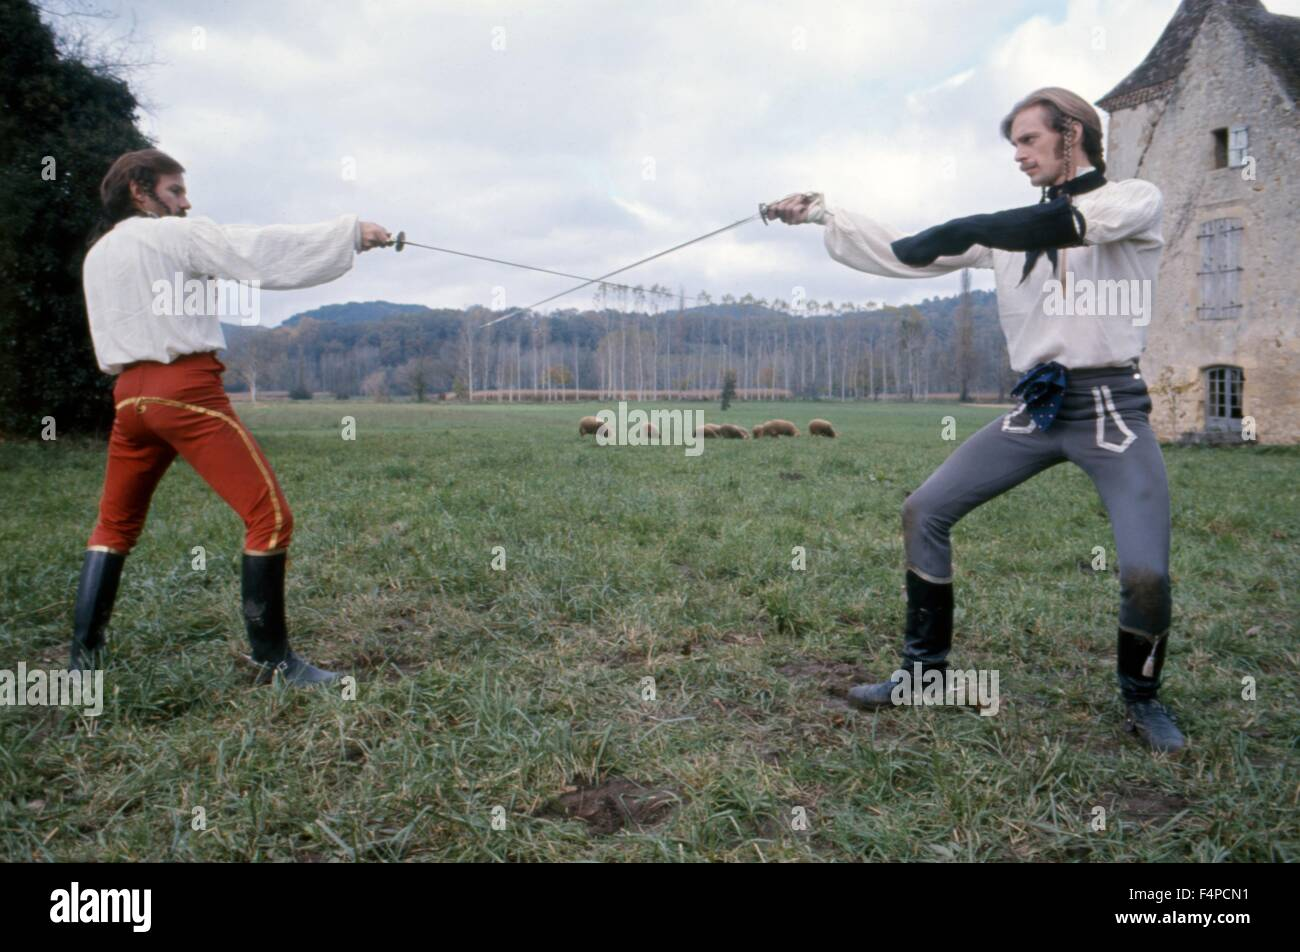 Harvey Keitel, Keith Carradine / The Duellists 1977 directed by Ridley Scott - Stock Image